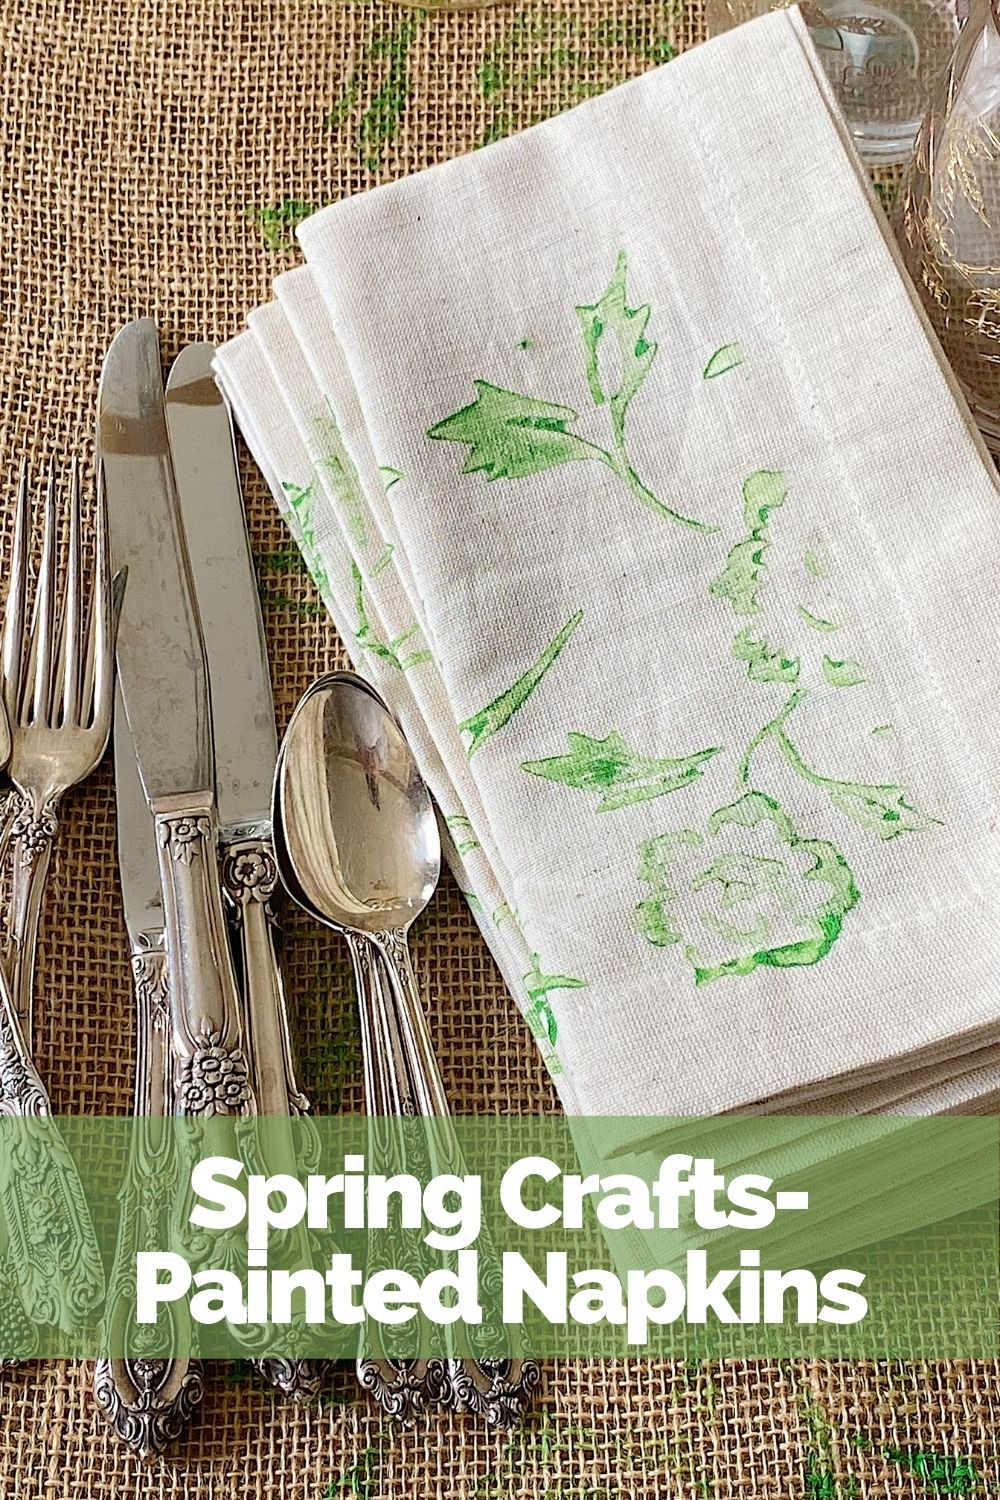 I love this spring craft! I made these painted napkins (and table runner) with my favorite spring colors and a paint roller. This is such an Easy DIY and fun spring craft.